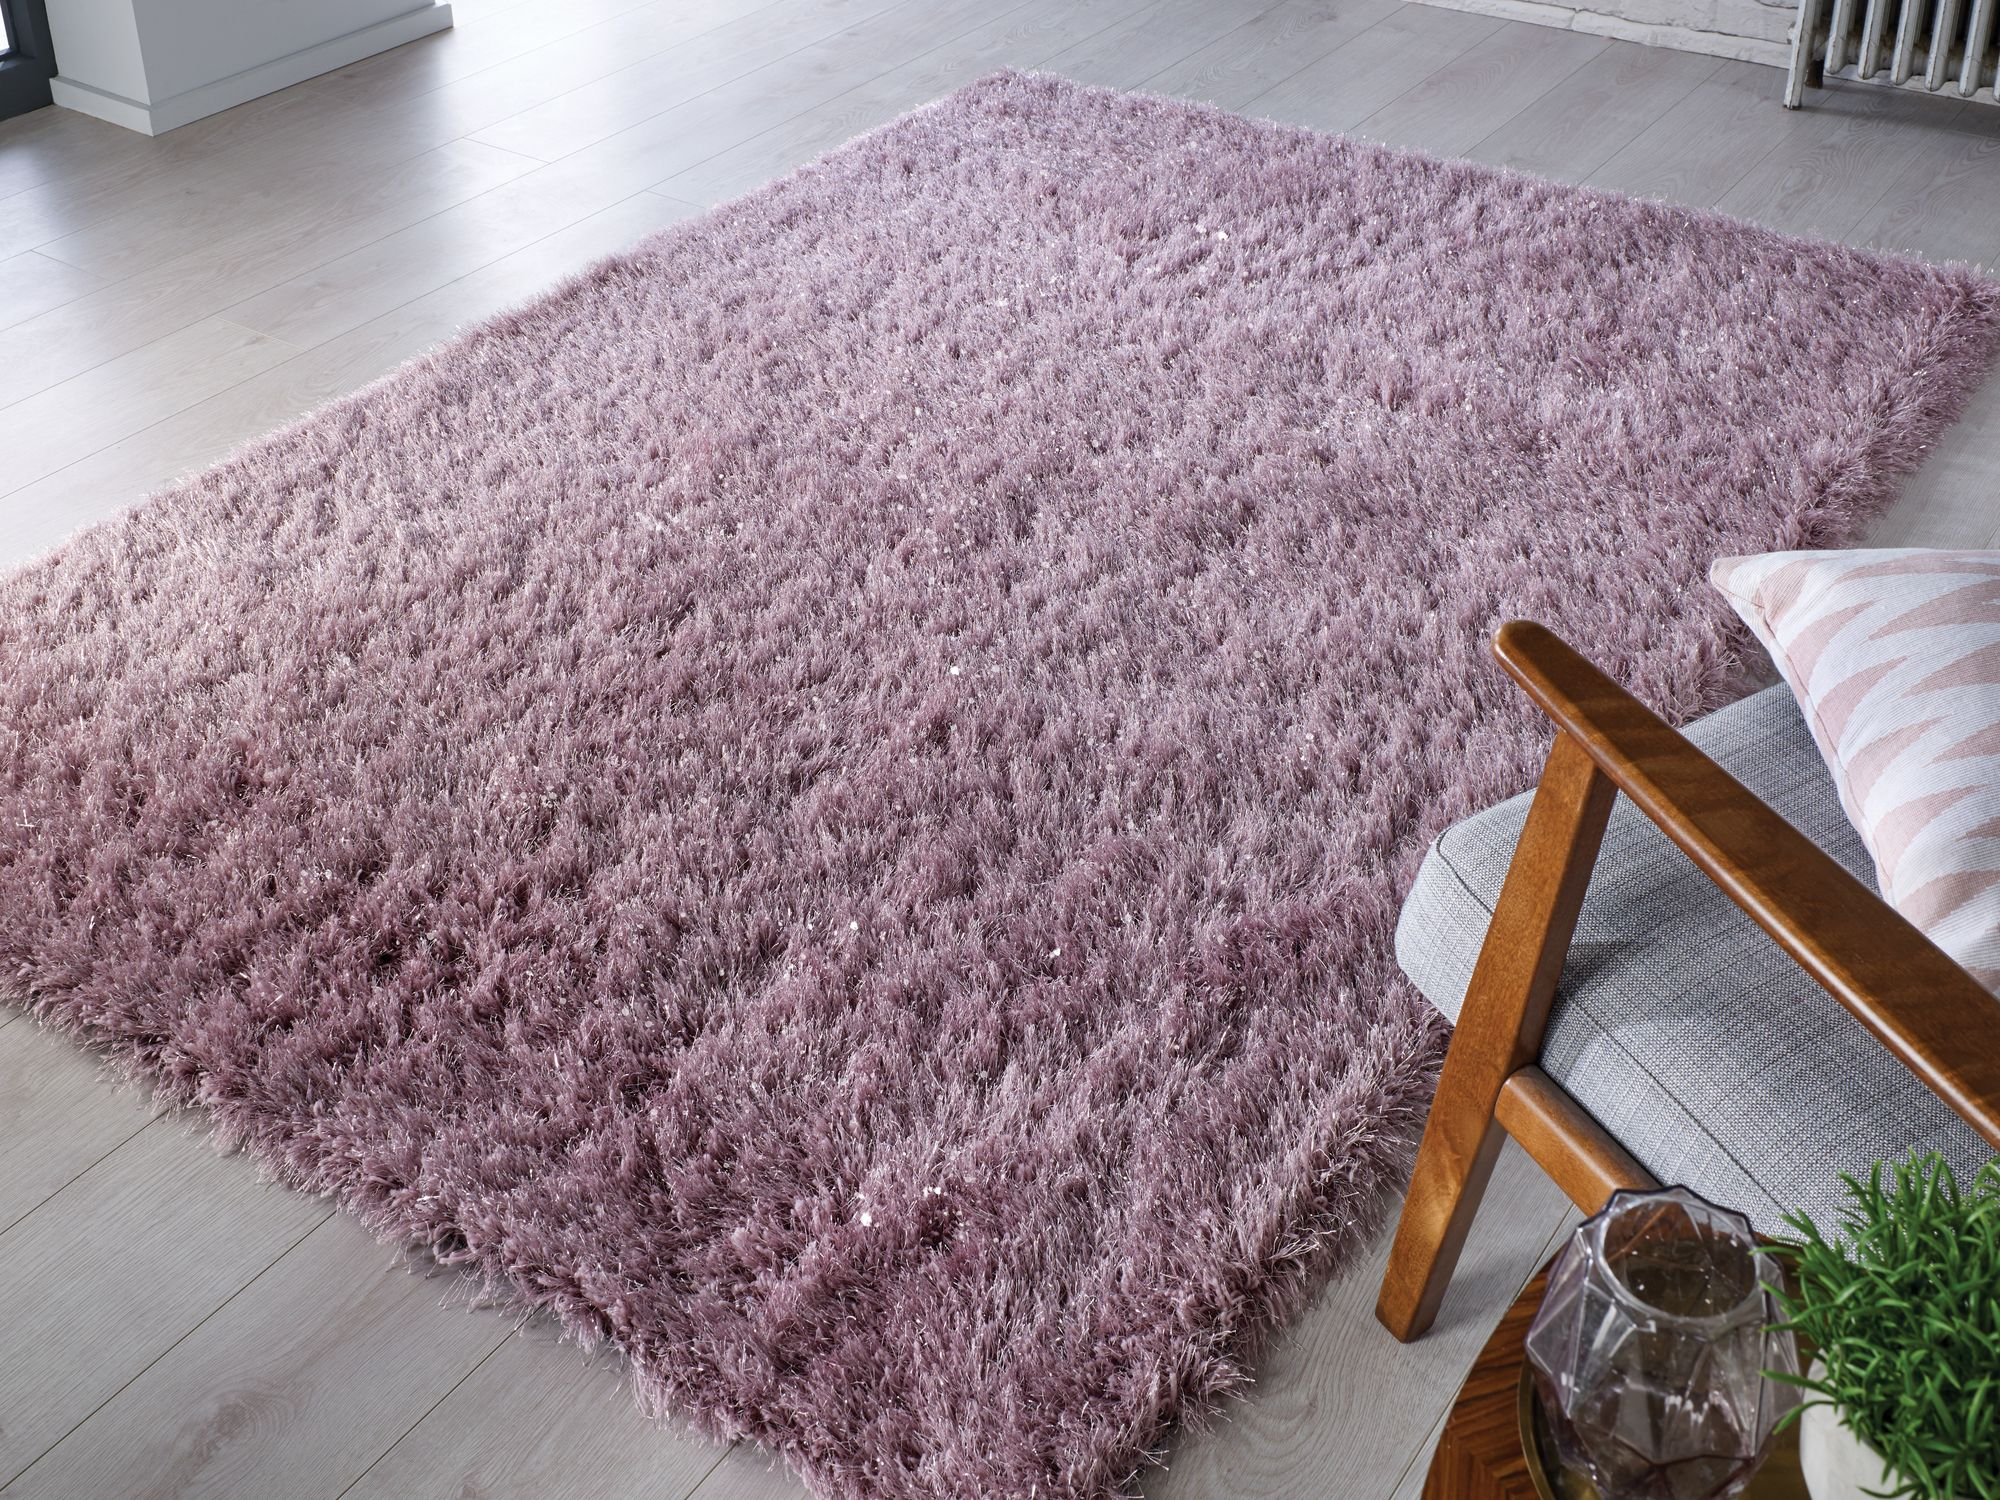 Dazzle Shine Shaggy Mauve Rug In 2020 Mauve Rug Shaggy Rug Rugs In Living Room